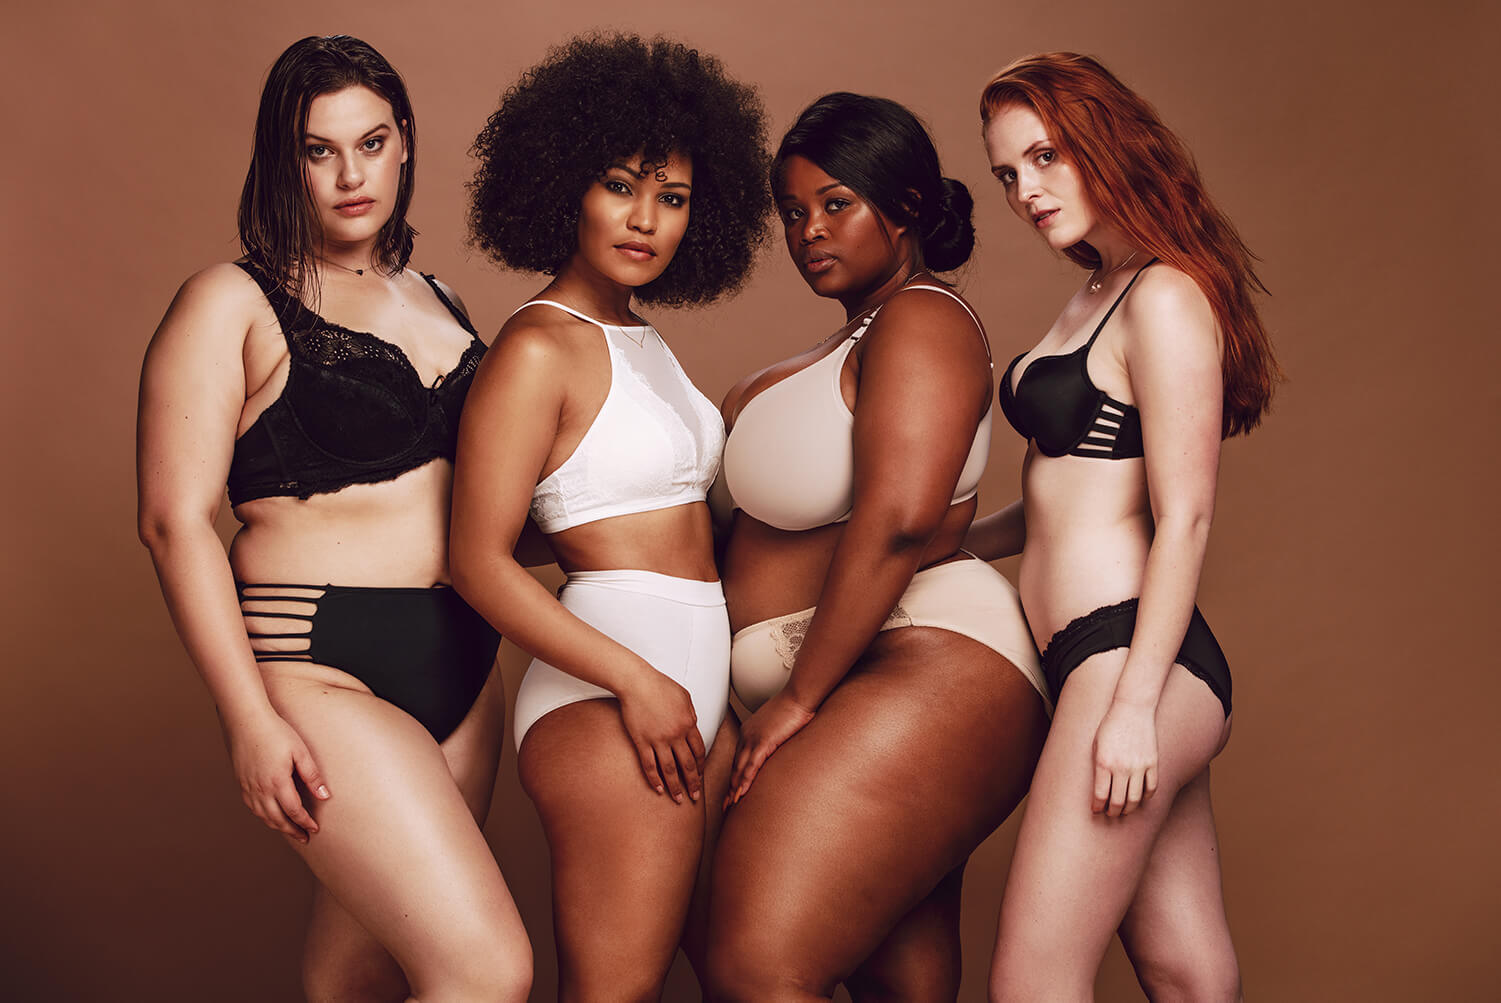 Body Confidence - 4 women on a fashion shoot - diverse in colour and size